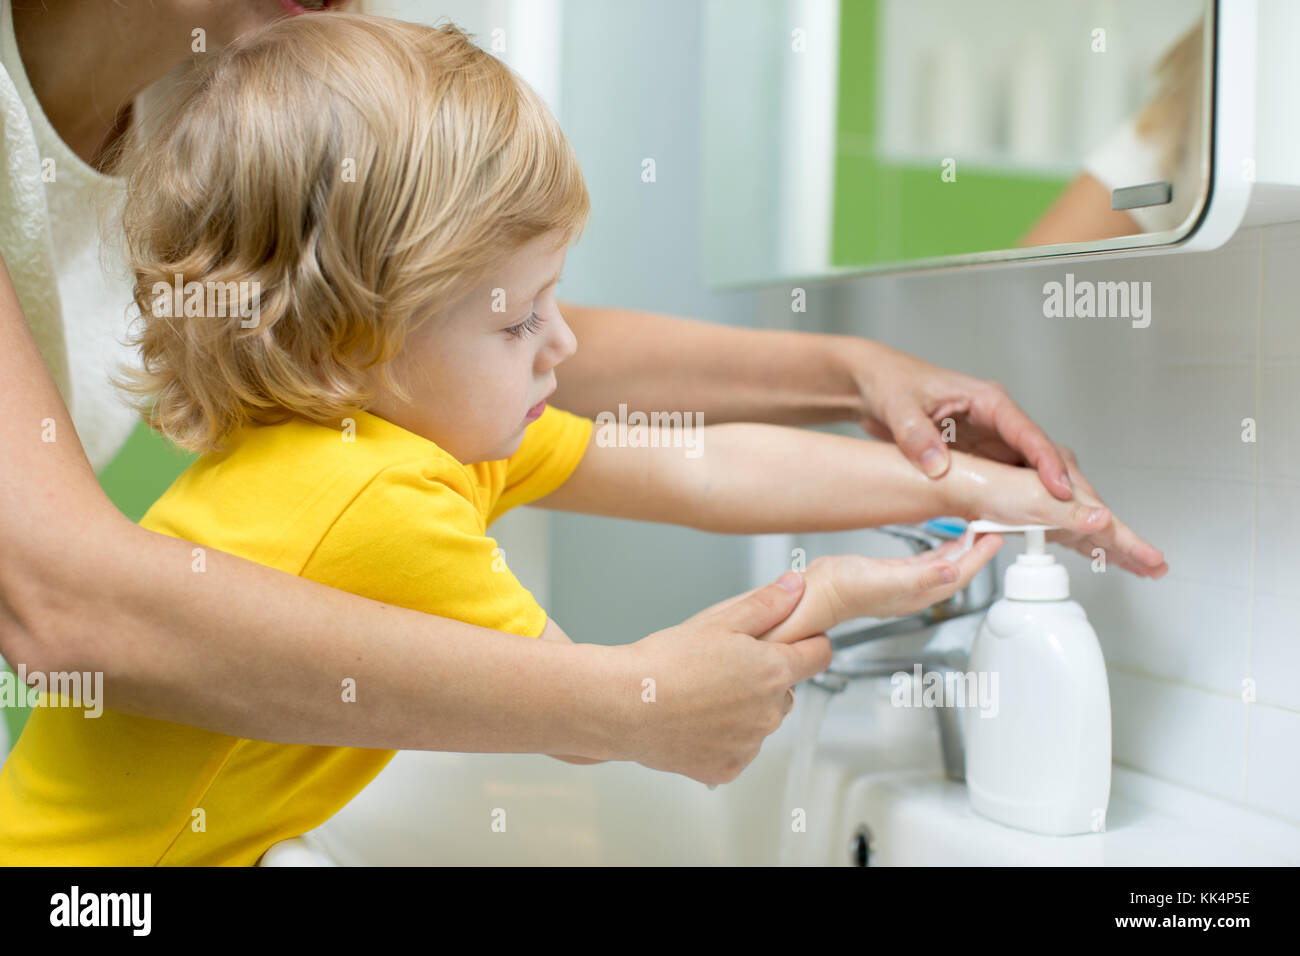 Mother and kid son washing their hands in the bathroom. Care and concern for children. - Stock Image